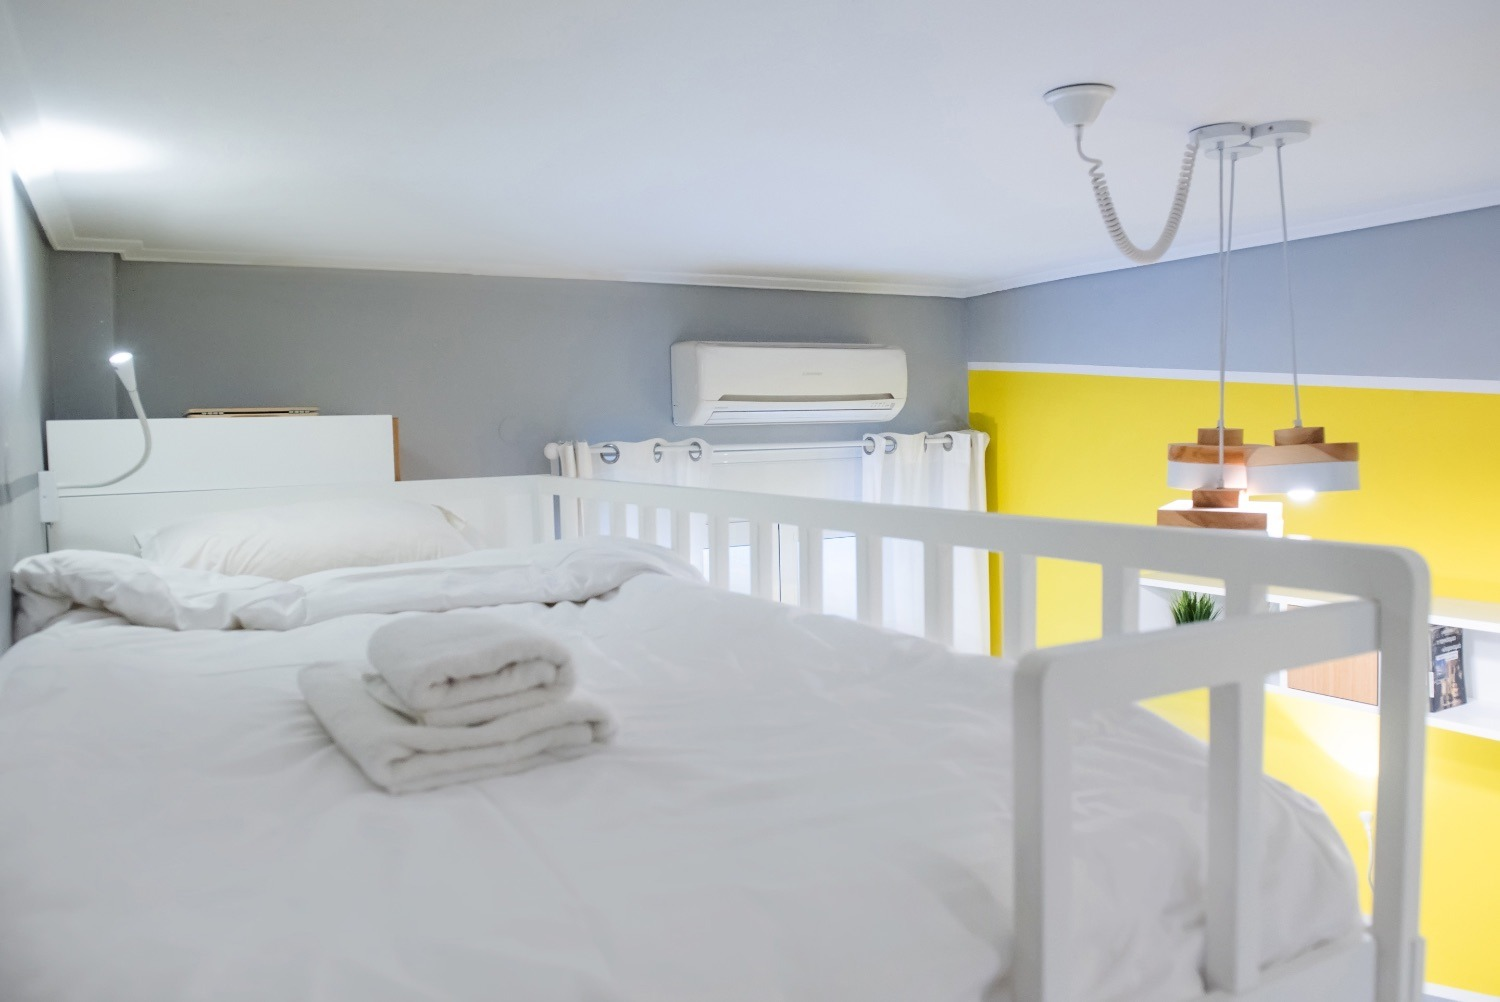 COCOMAT full bed